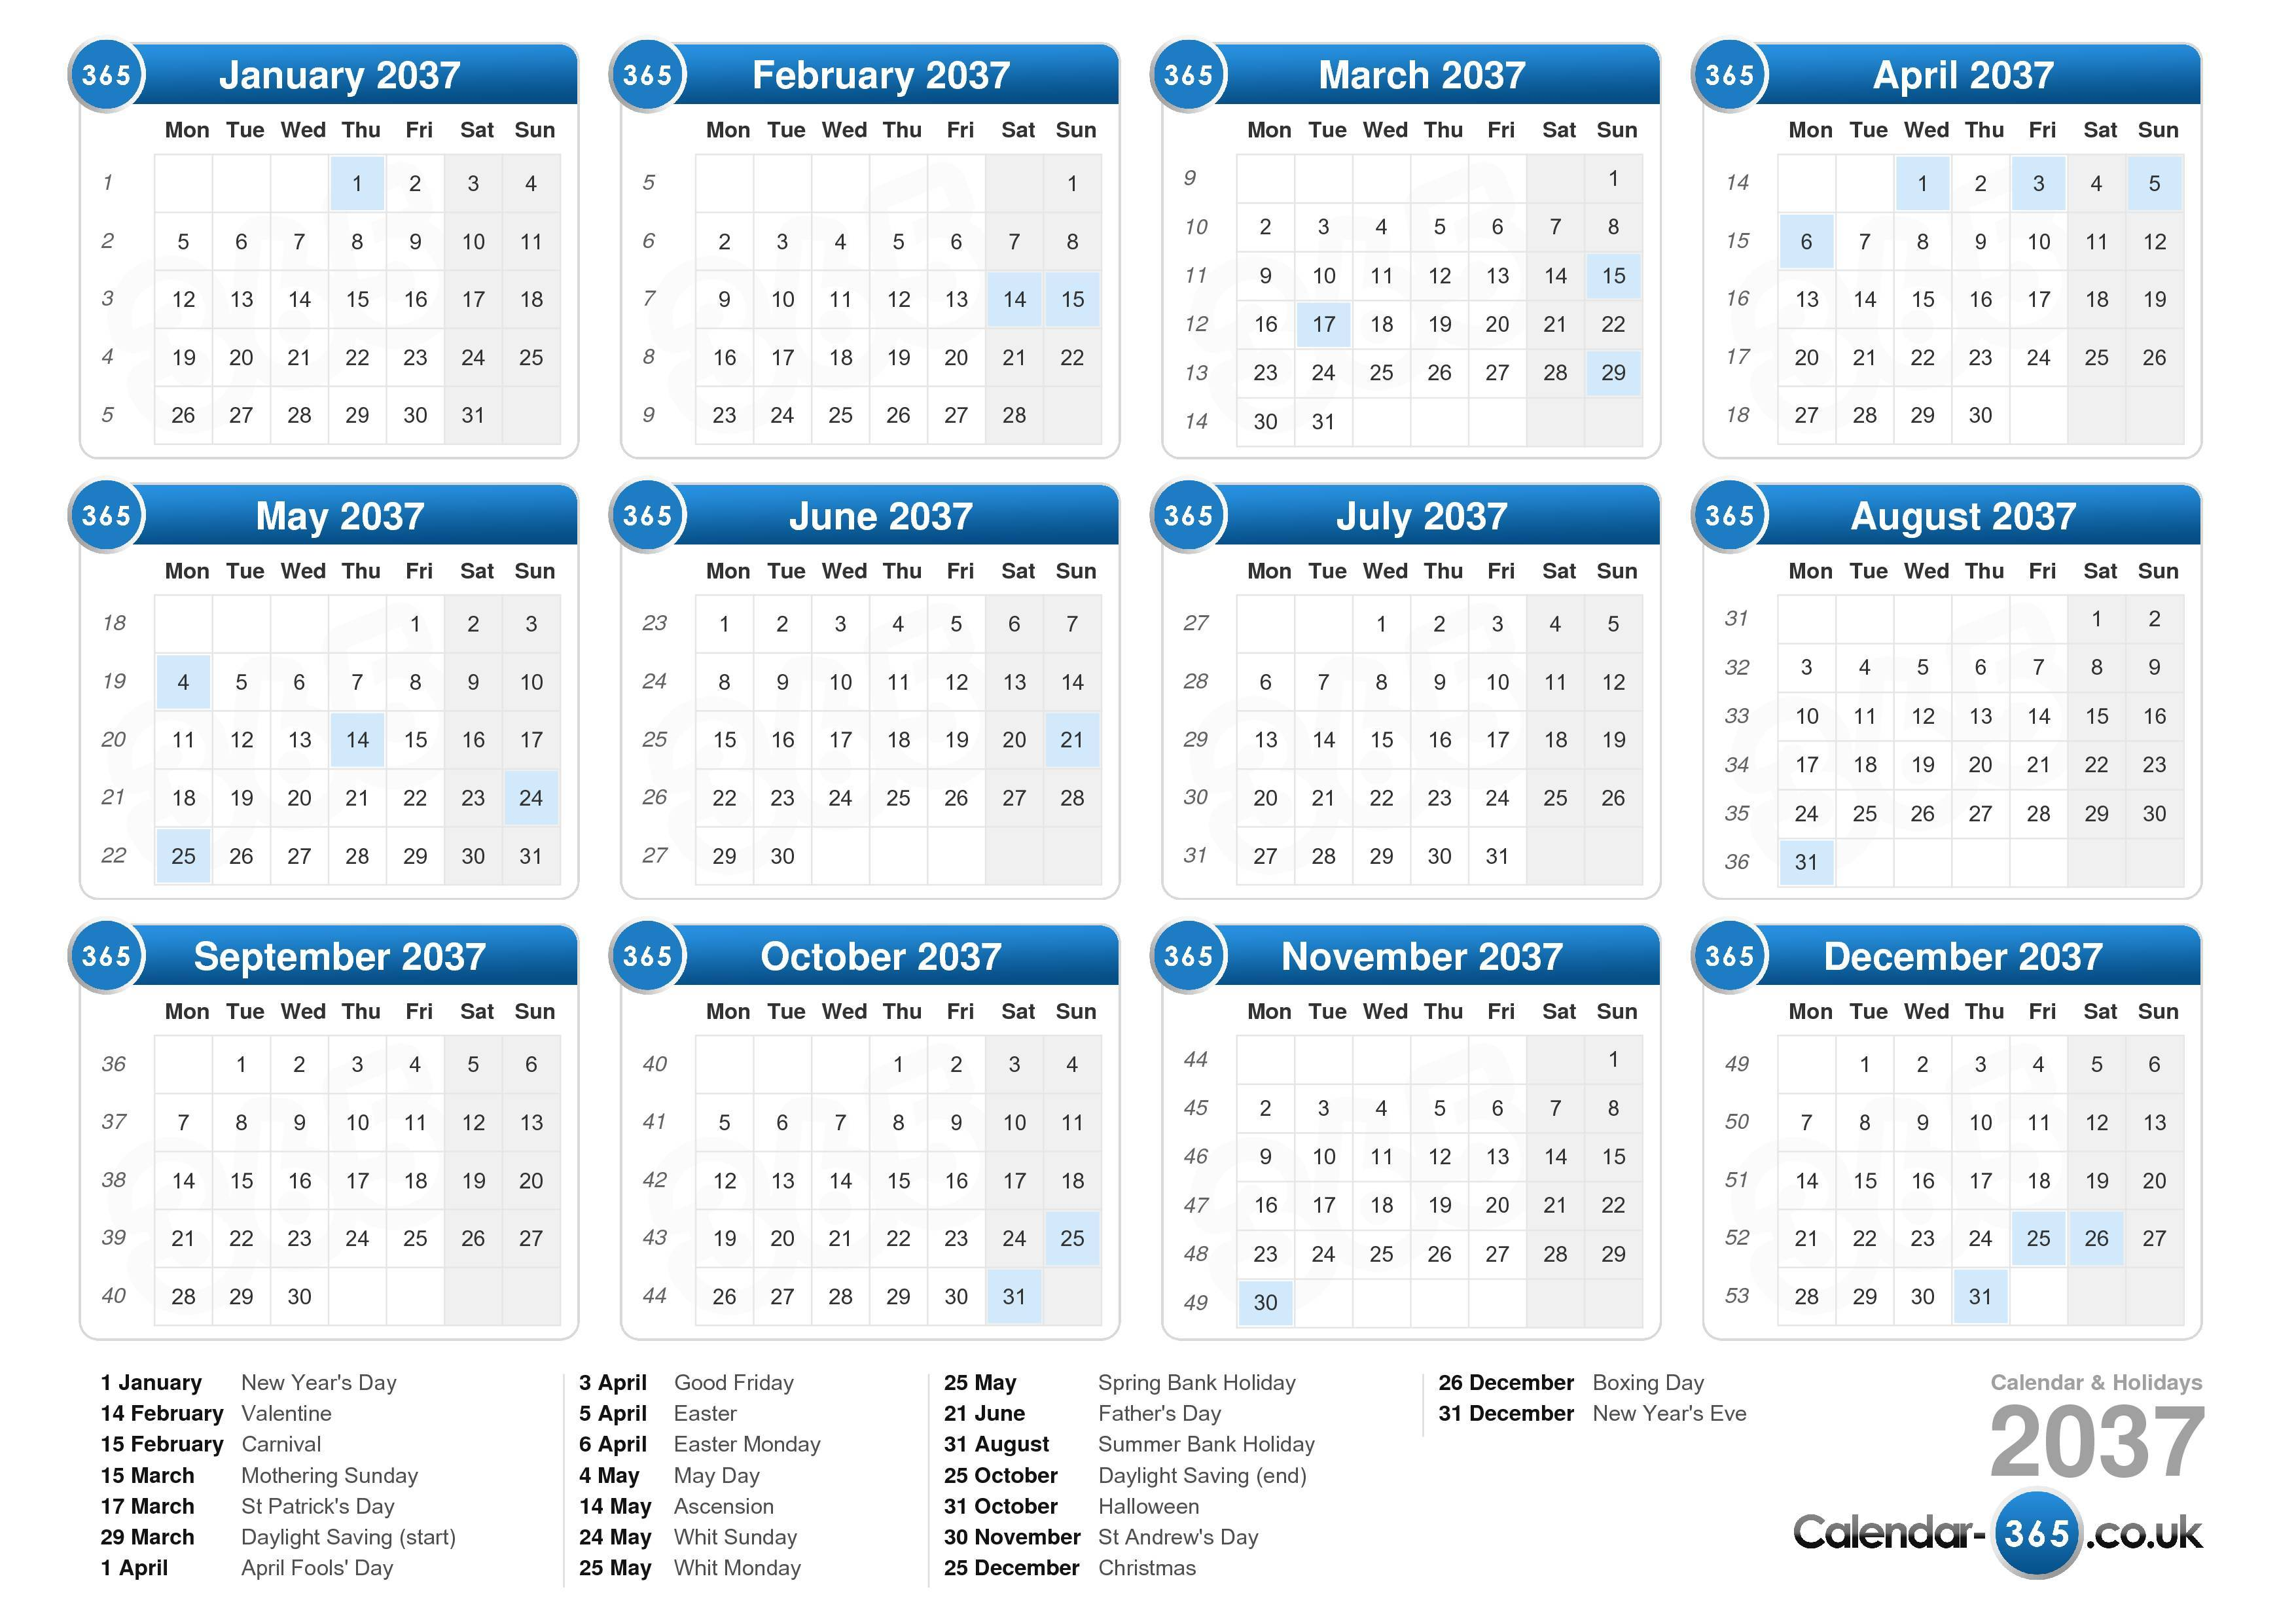 Download the printable Calendar with Holidays 2037